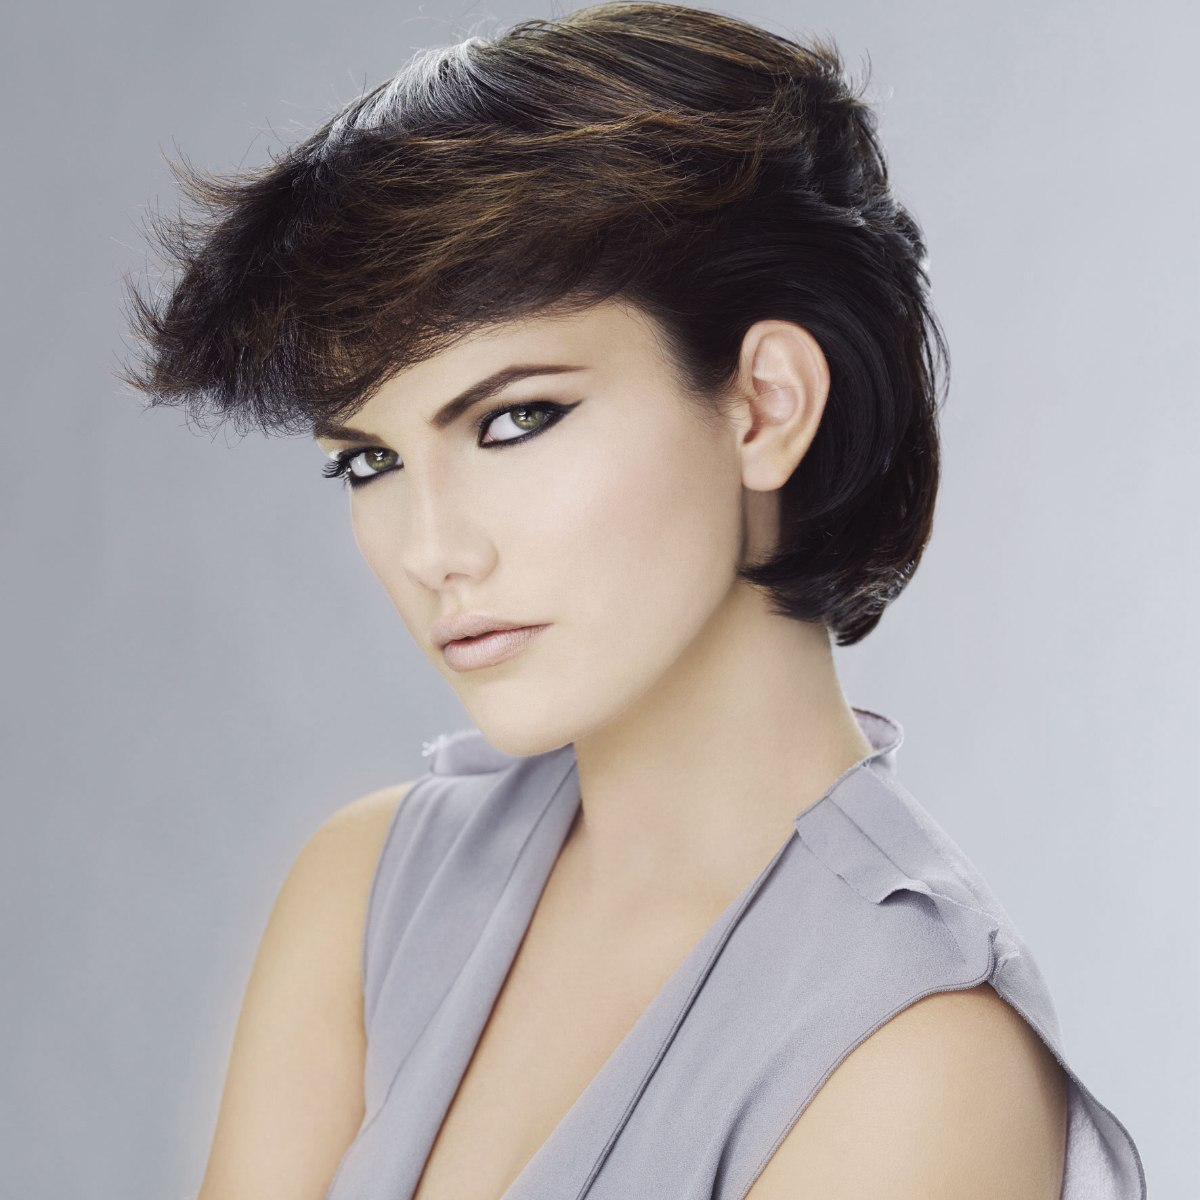 80s short hair look with a curled neck and a big fringe